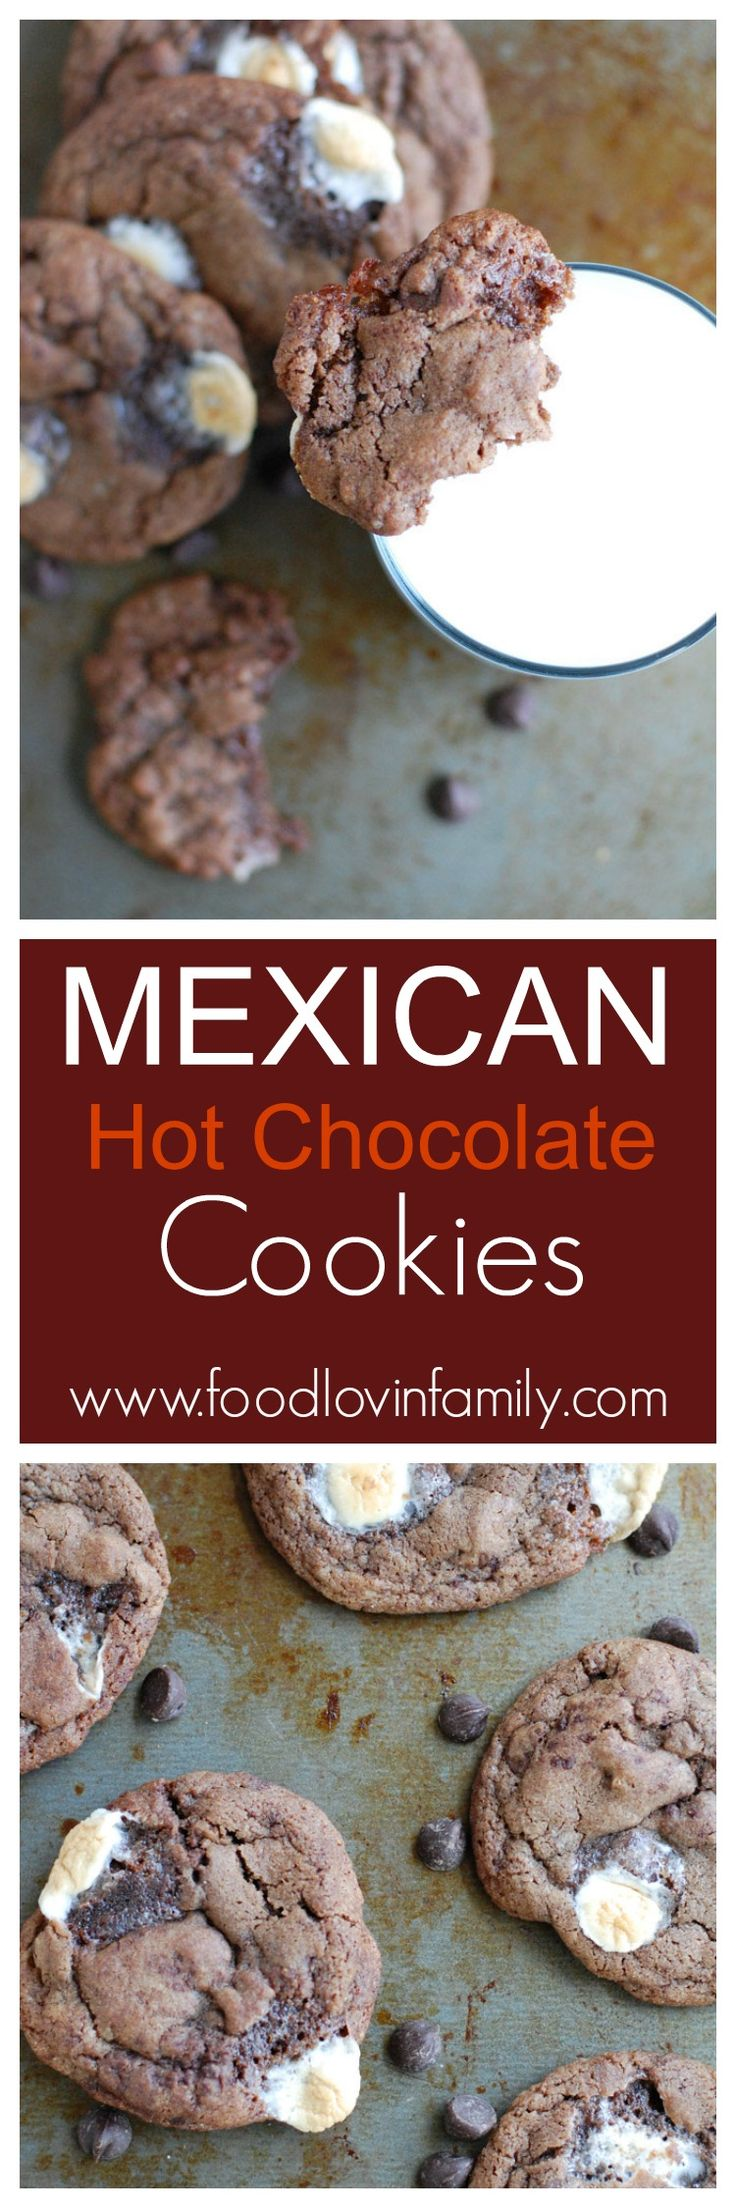 Mexican Hot Chocolate Cookies | http://www.foodlovinfamily.com/mexican-hot-chocolate-cookies/